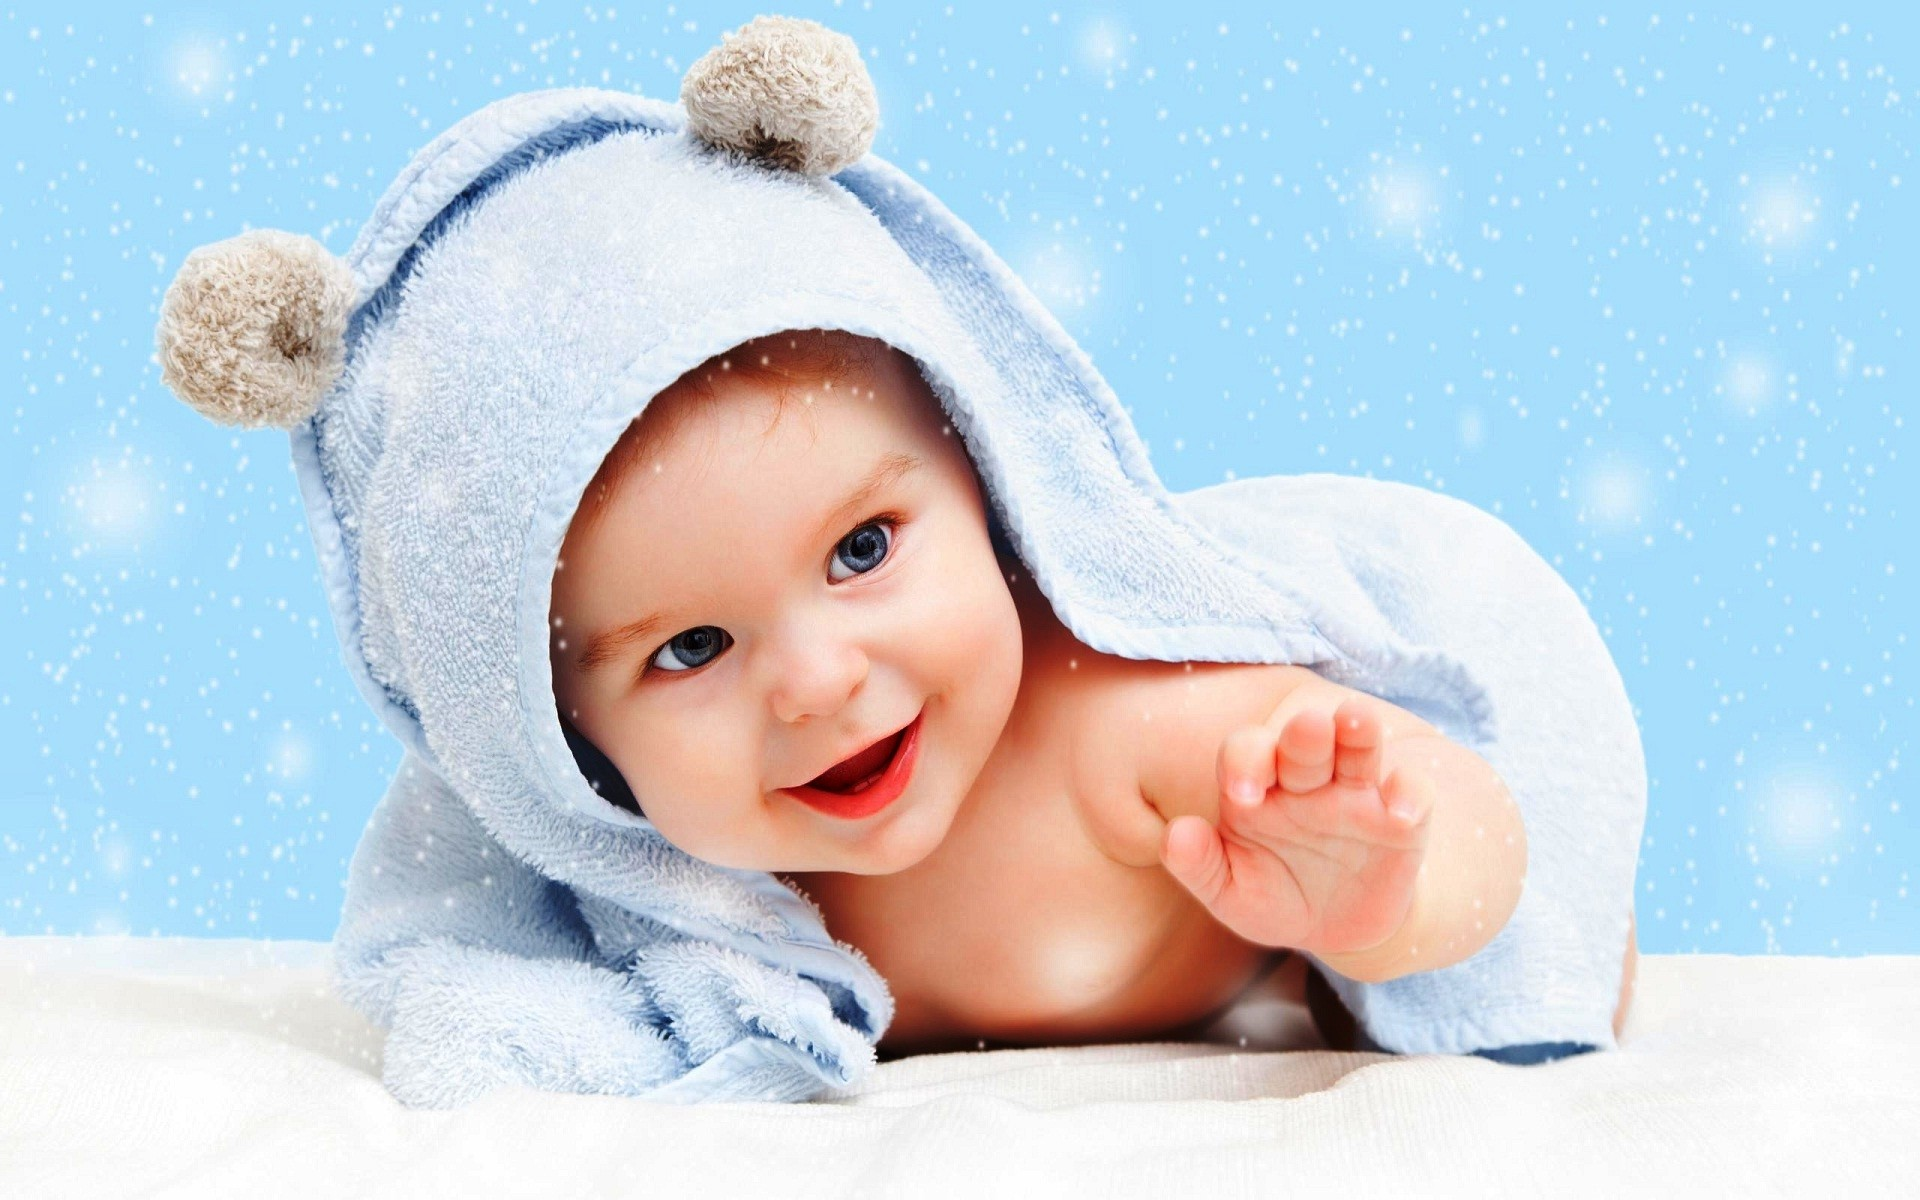 Cute Baby Boy Wallpapers Posted By Sarah Walker